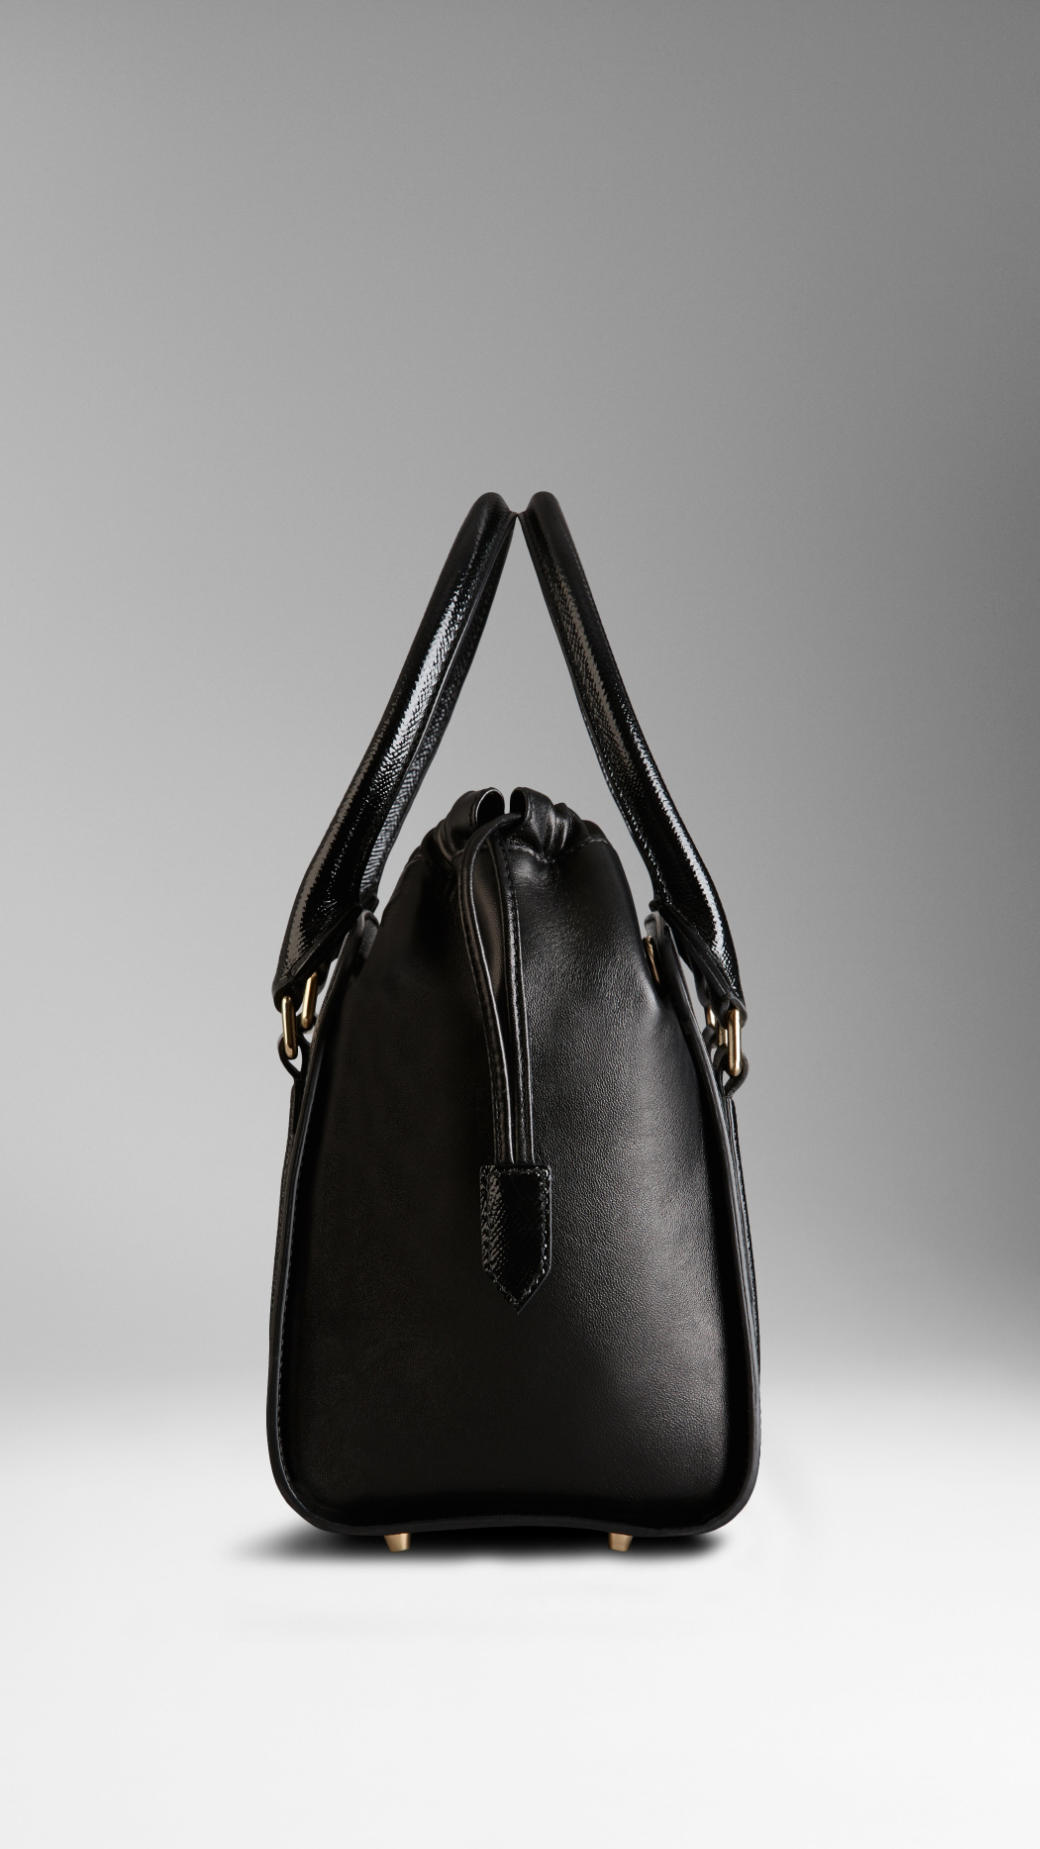 d16028fbba25 Lyst - Burberry Small Patent London Leather Tote Bag in Black